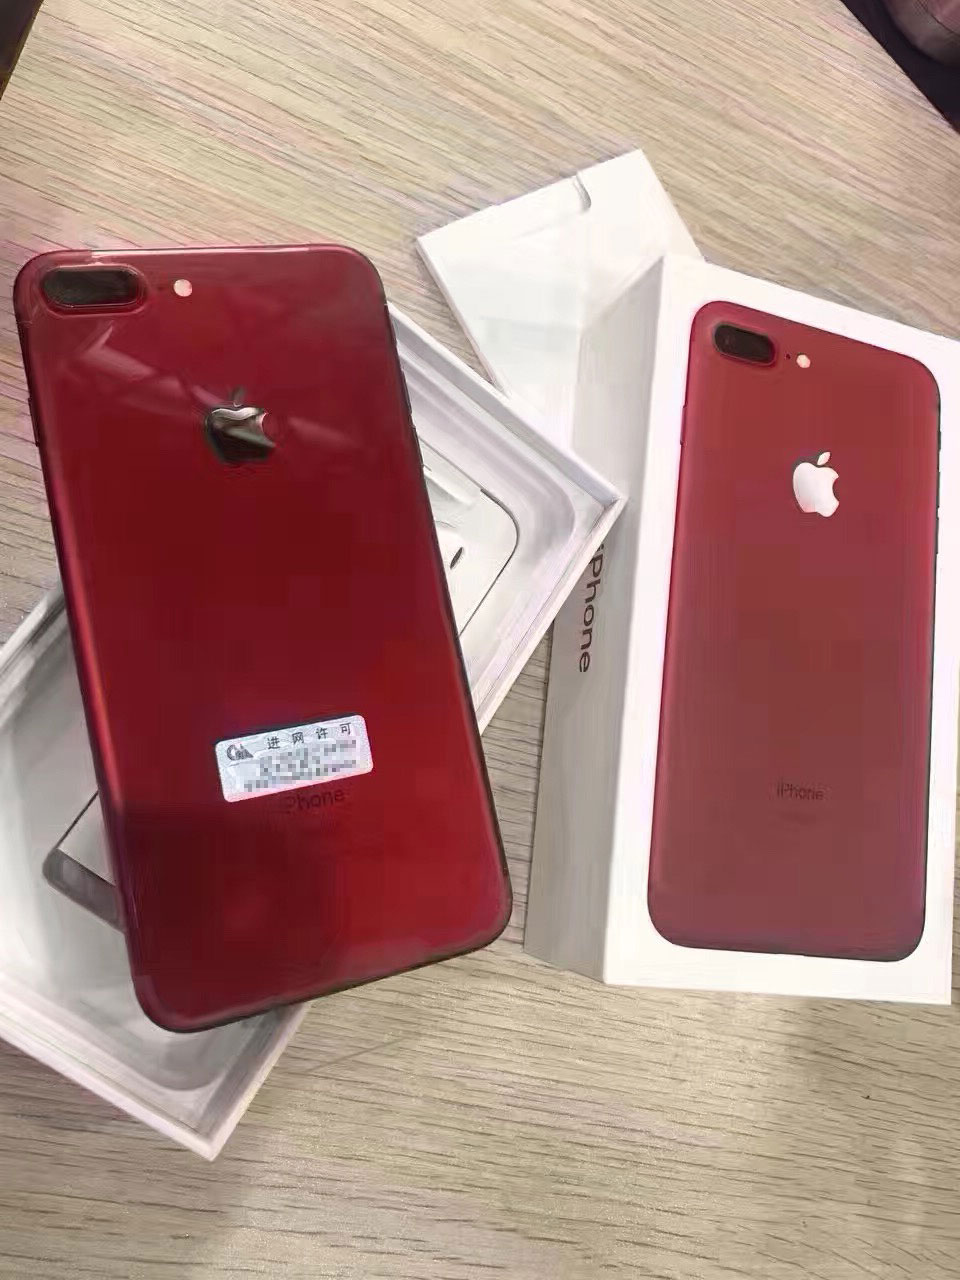 iPhone siete (PRODUCT)RED saliendo de China